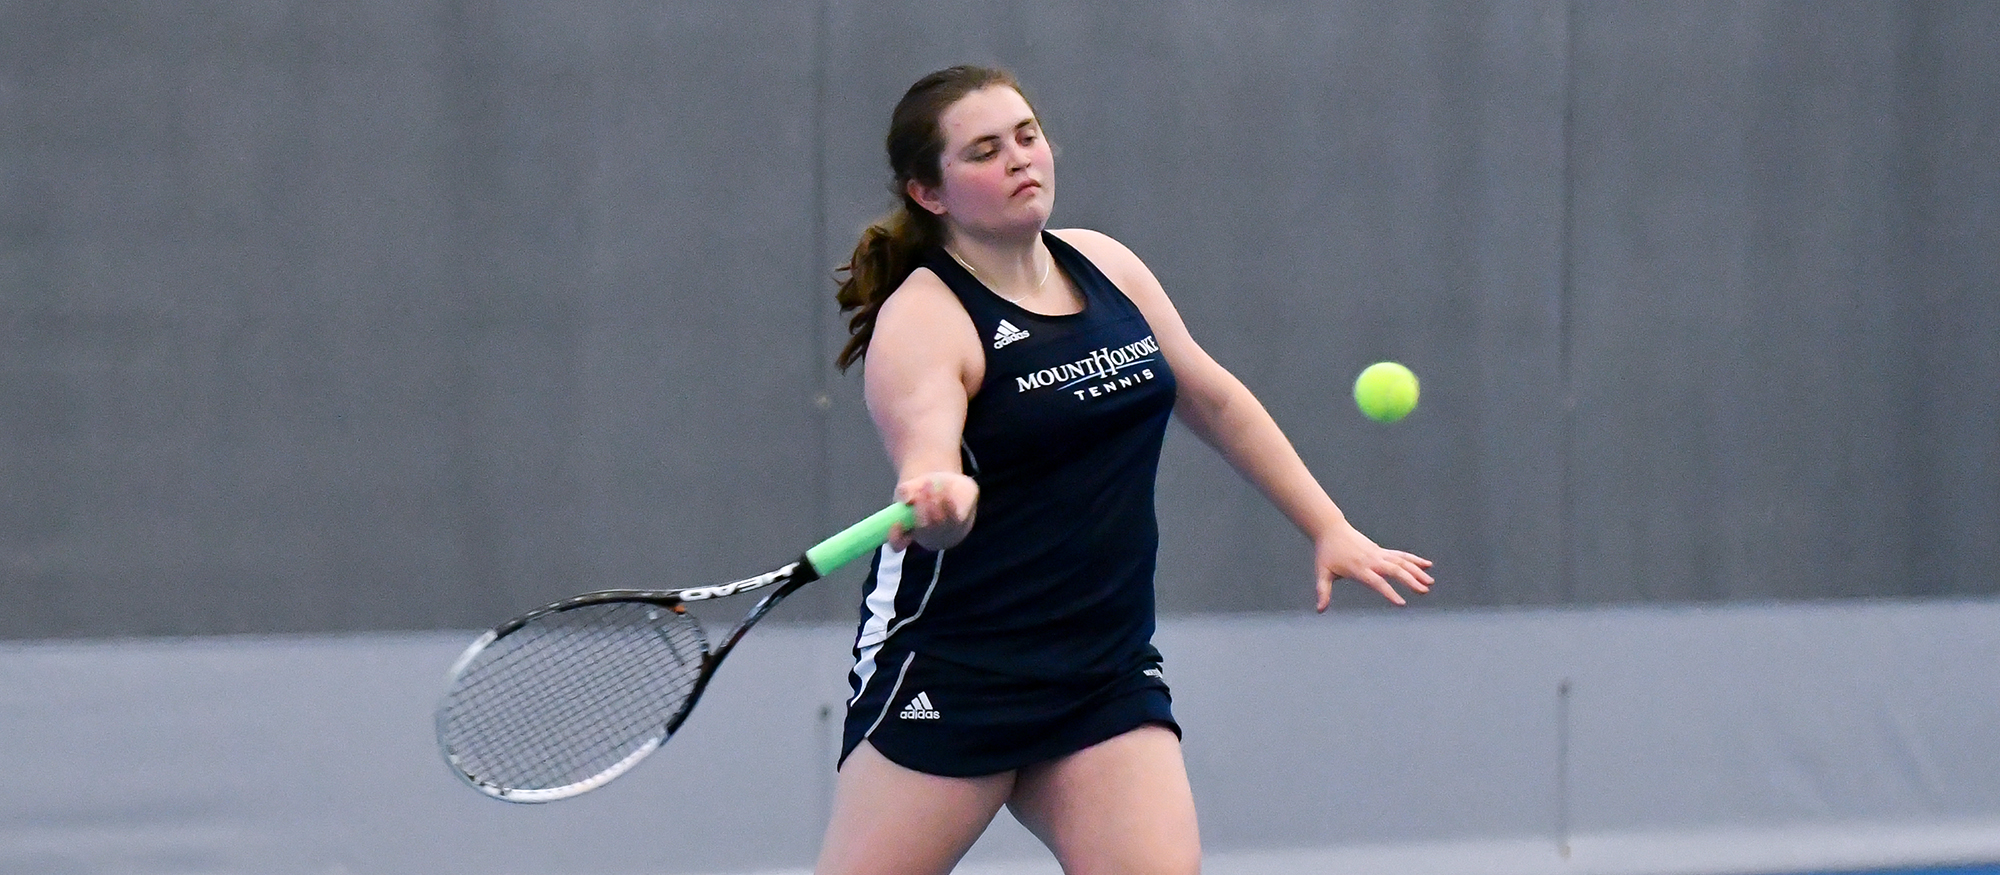 Action photo of Lyons tennis player, Madison Rosen.